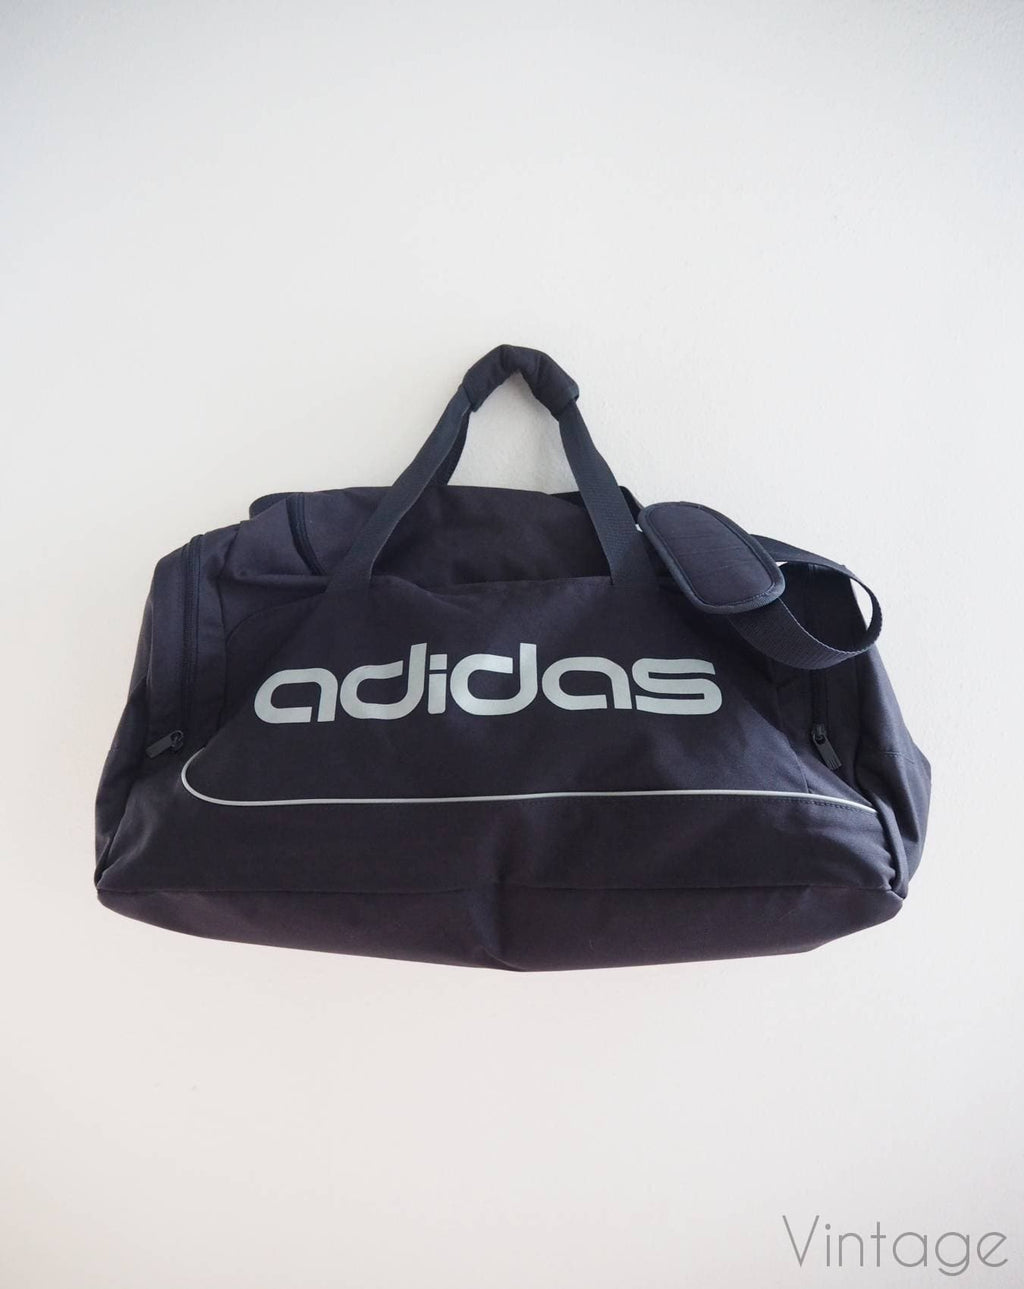 Adidas bag Second Chance Second chance